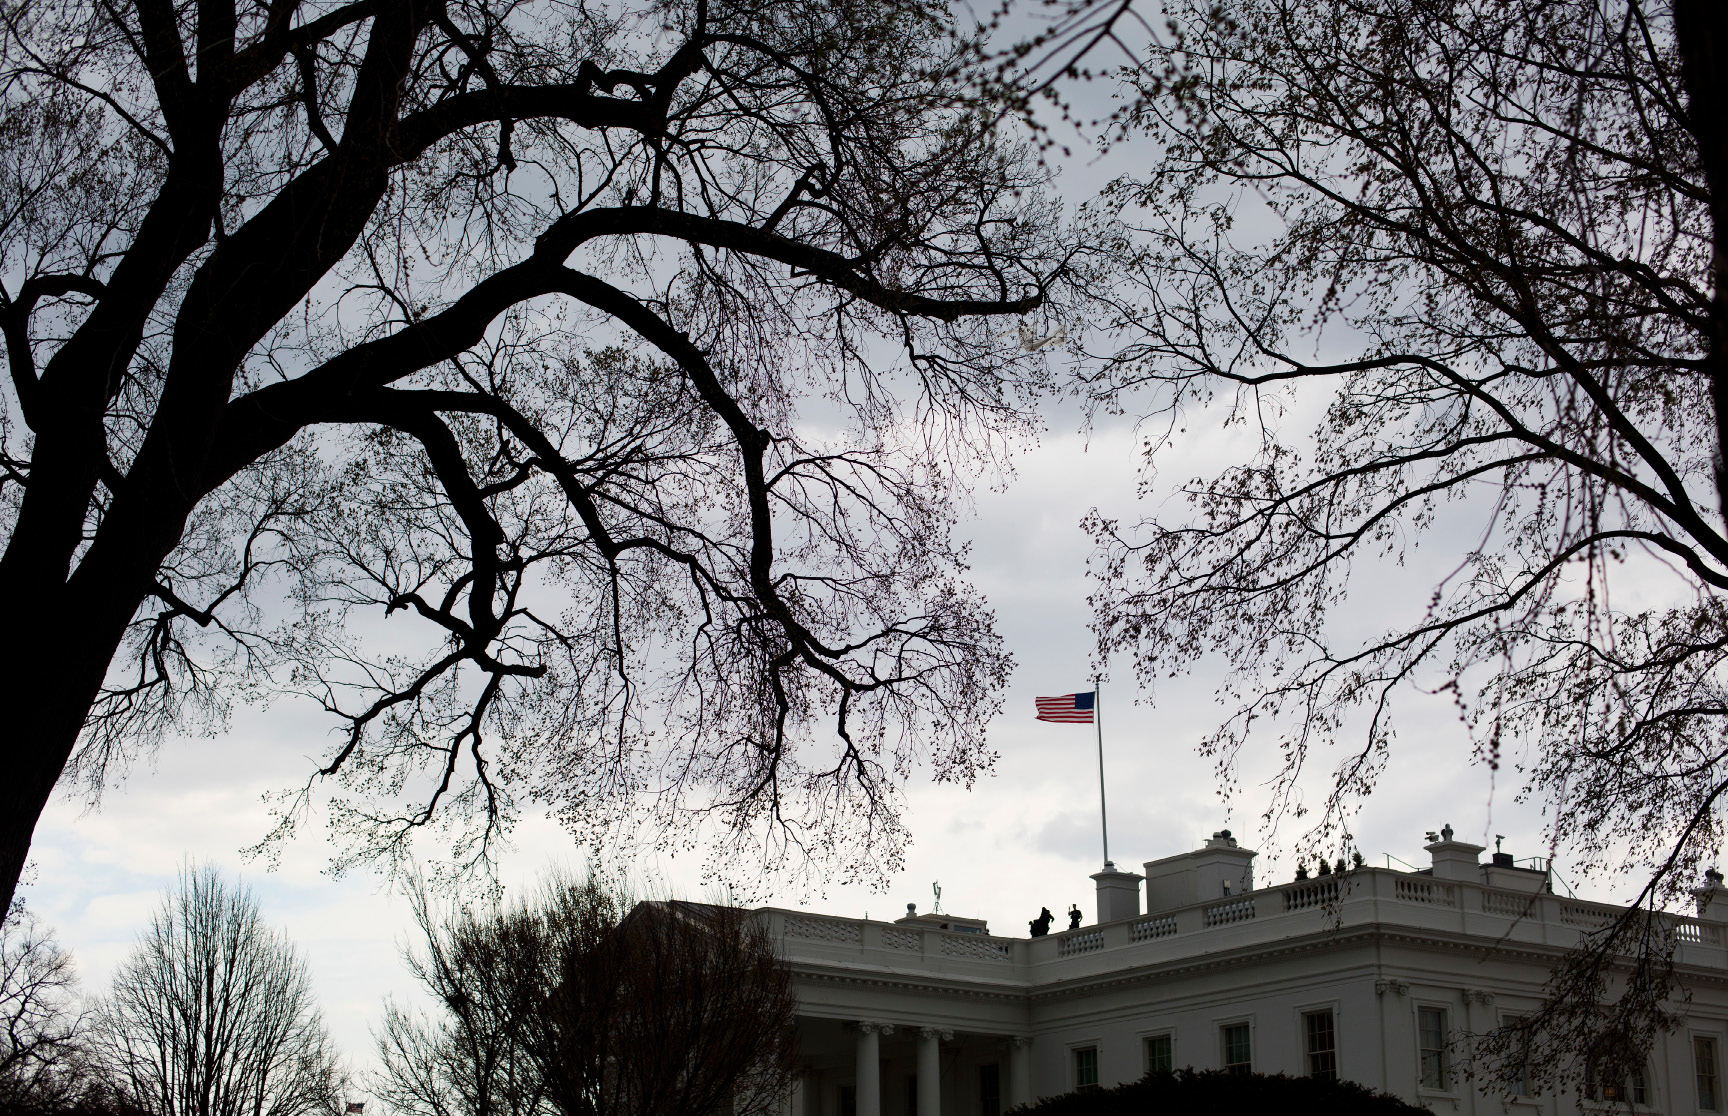 Storm clouds begin to form over the White House in Washington Wednesday, March 1, 2017. (AP Photo/Pablo Martinez Monsivais)